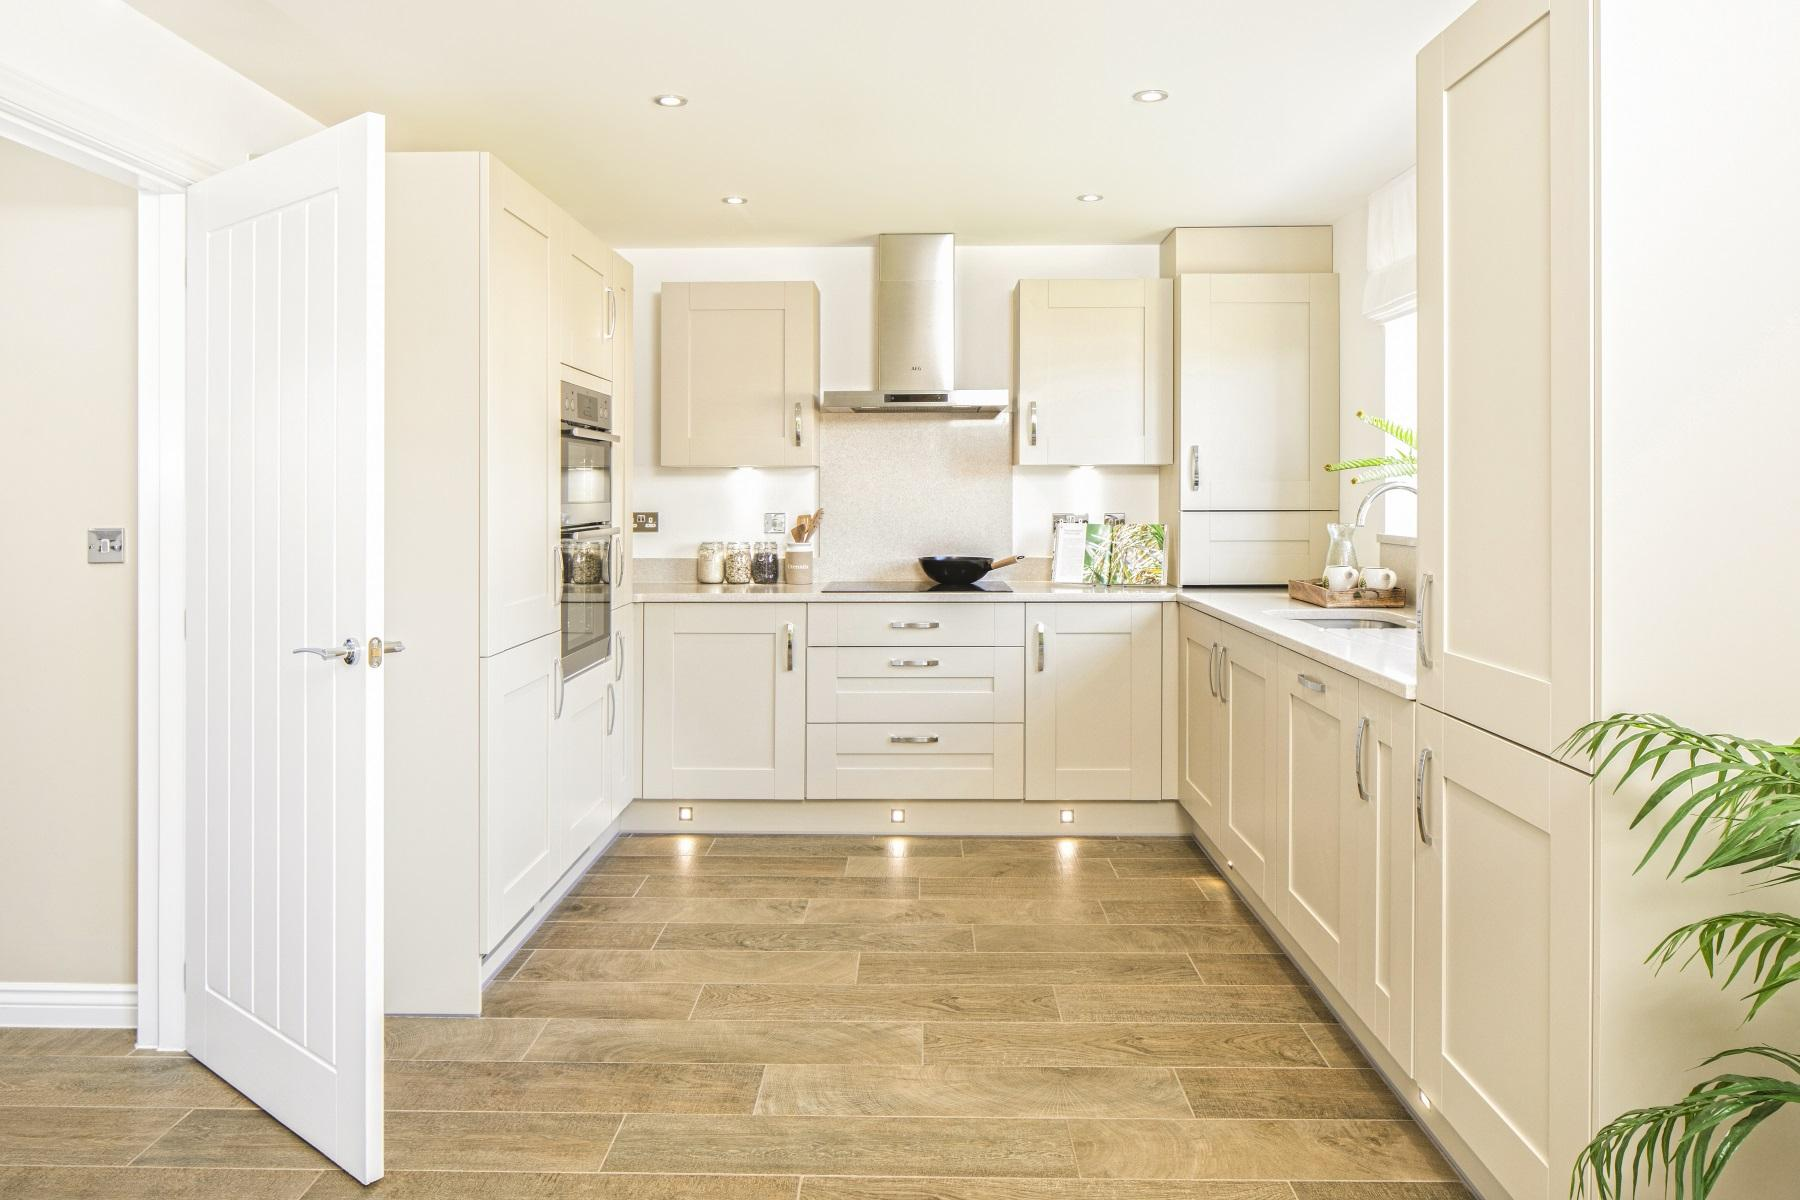 TW Exeter - Hele Park - Shelford example kitchen